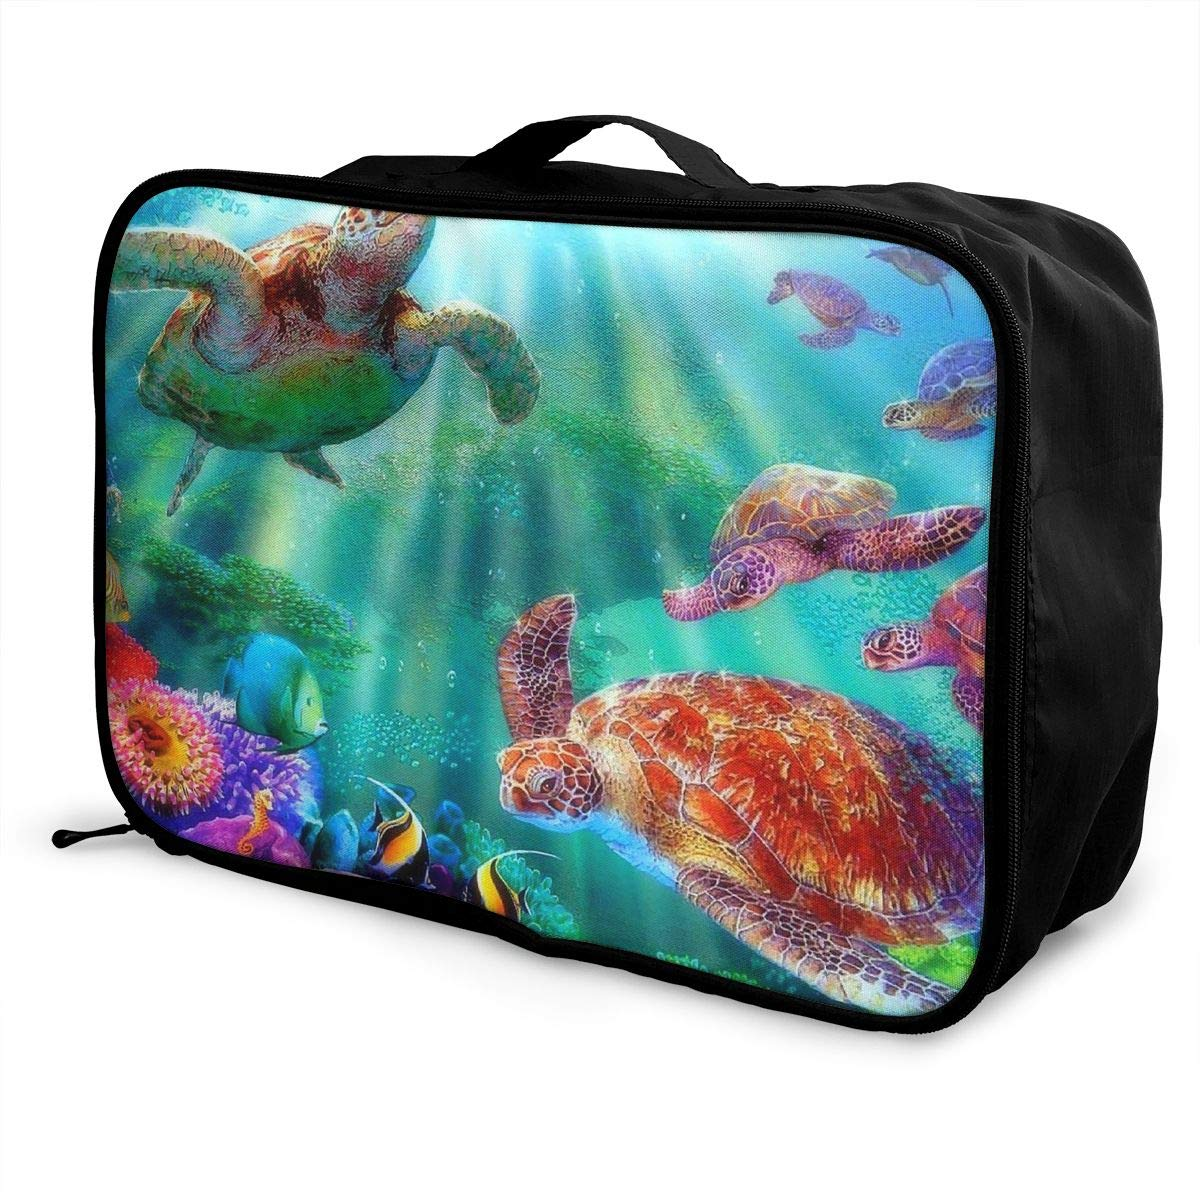 Travel Luggage Duffle Bag Lightweight Portable Handbag Watercolor Sea Turtle Paintings Large Capacity Waterproof Foldable Storage Tote